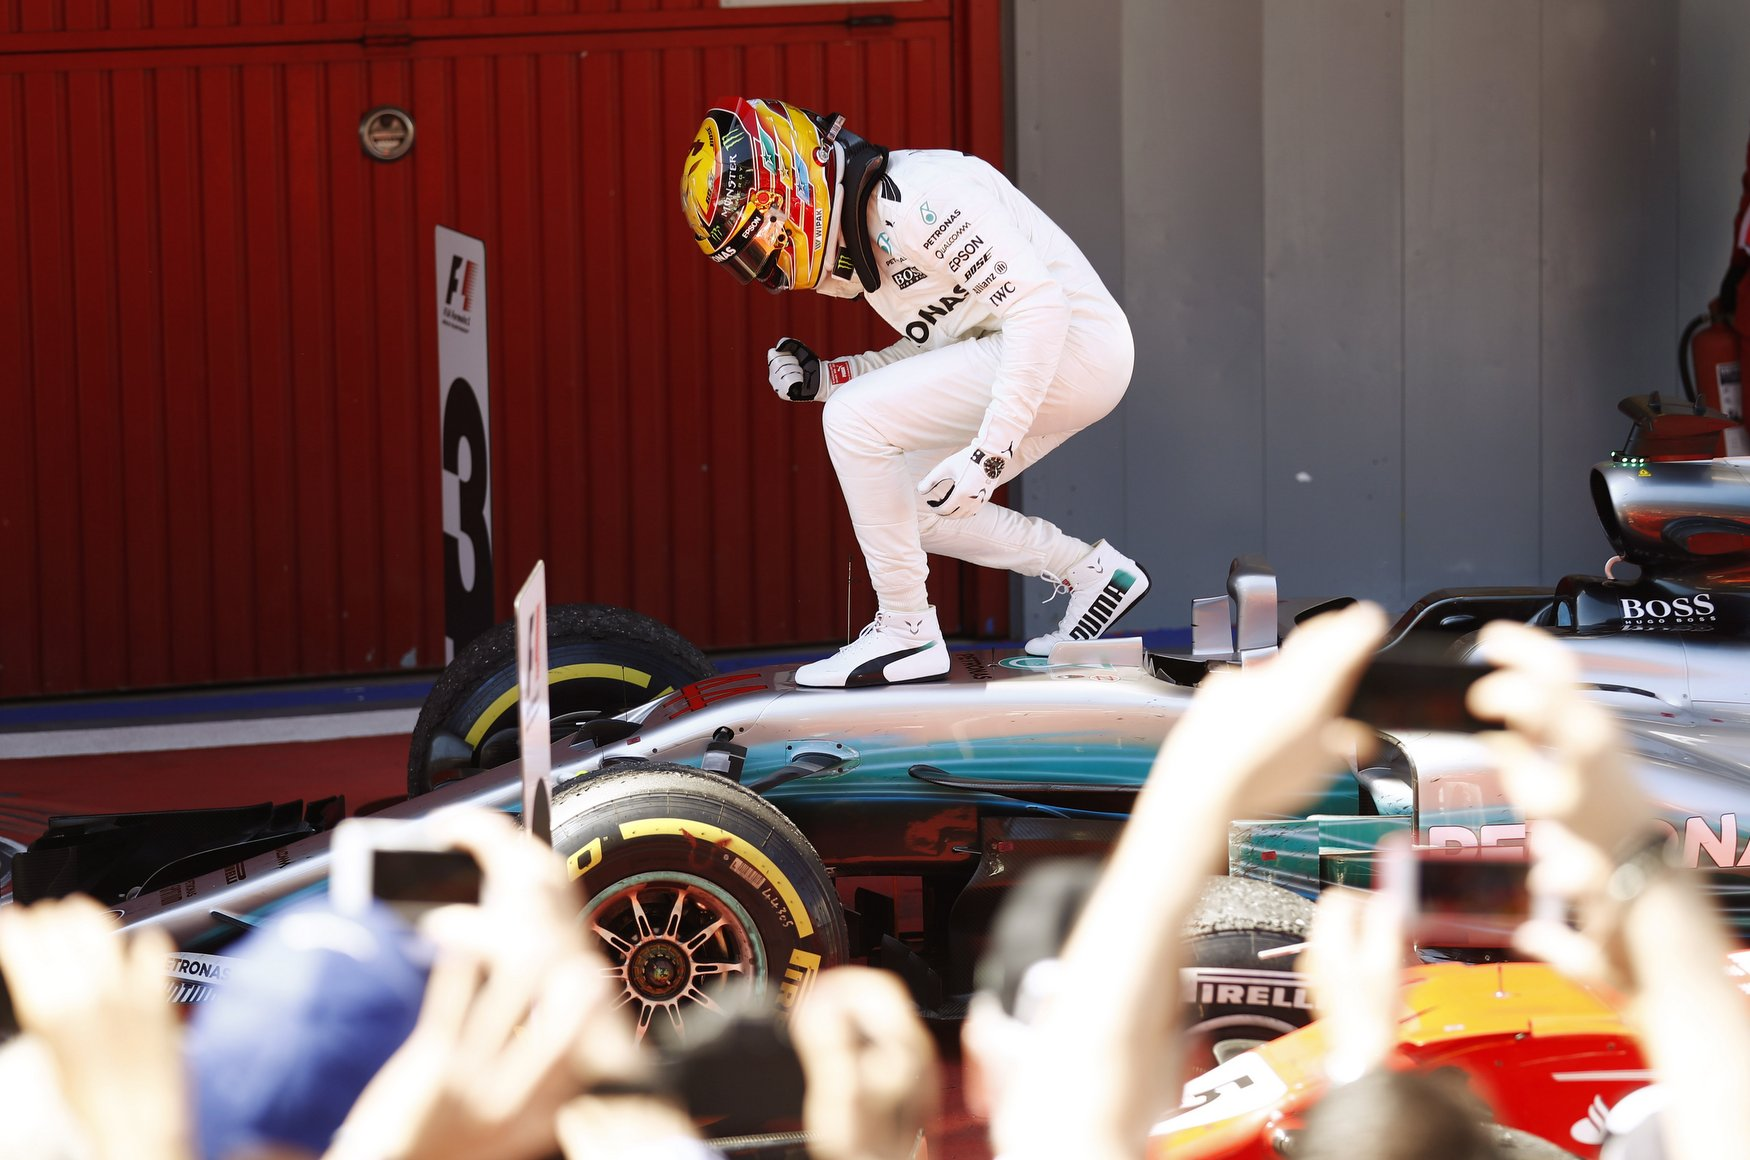 Circuit de Catalunya, Barcelona, Spain. Sunday 14 May 2017. Lewis Hamilton, Mercedes F1 W08 EQ Power+, celebrates after he climbs from his car after winning the race. World Copyright: Glenn Dunbar/LAT Images ref: Digital Image _31I6220